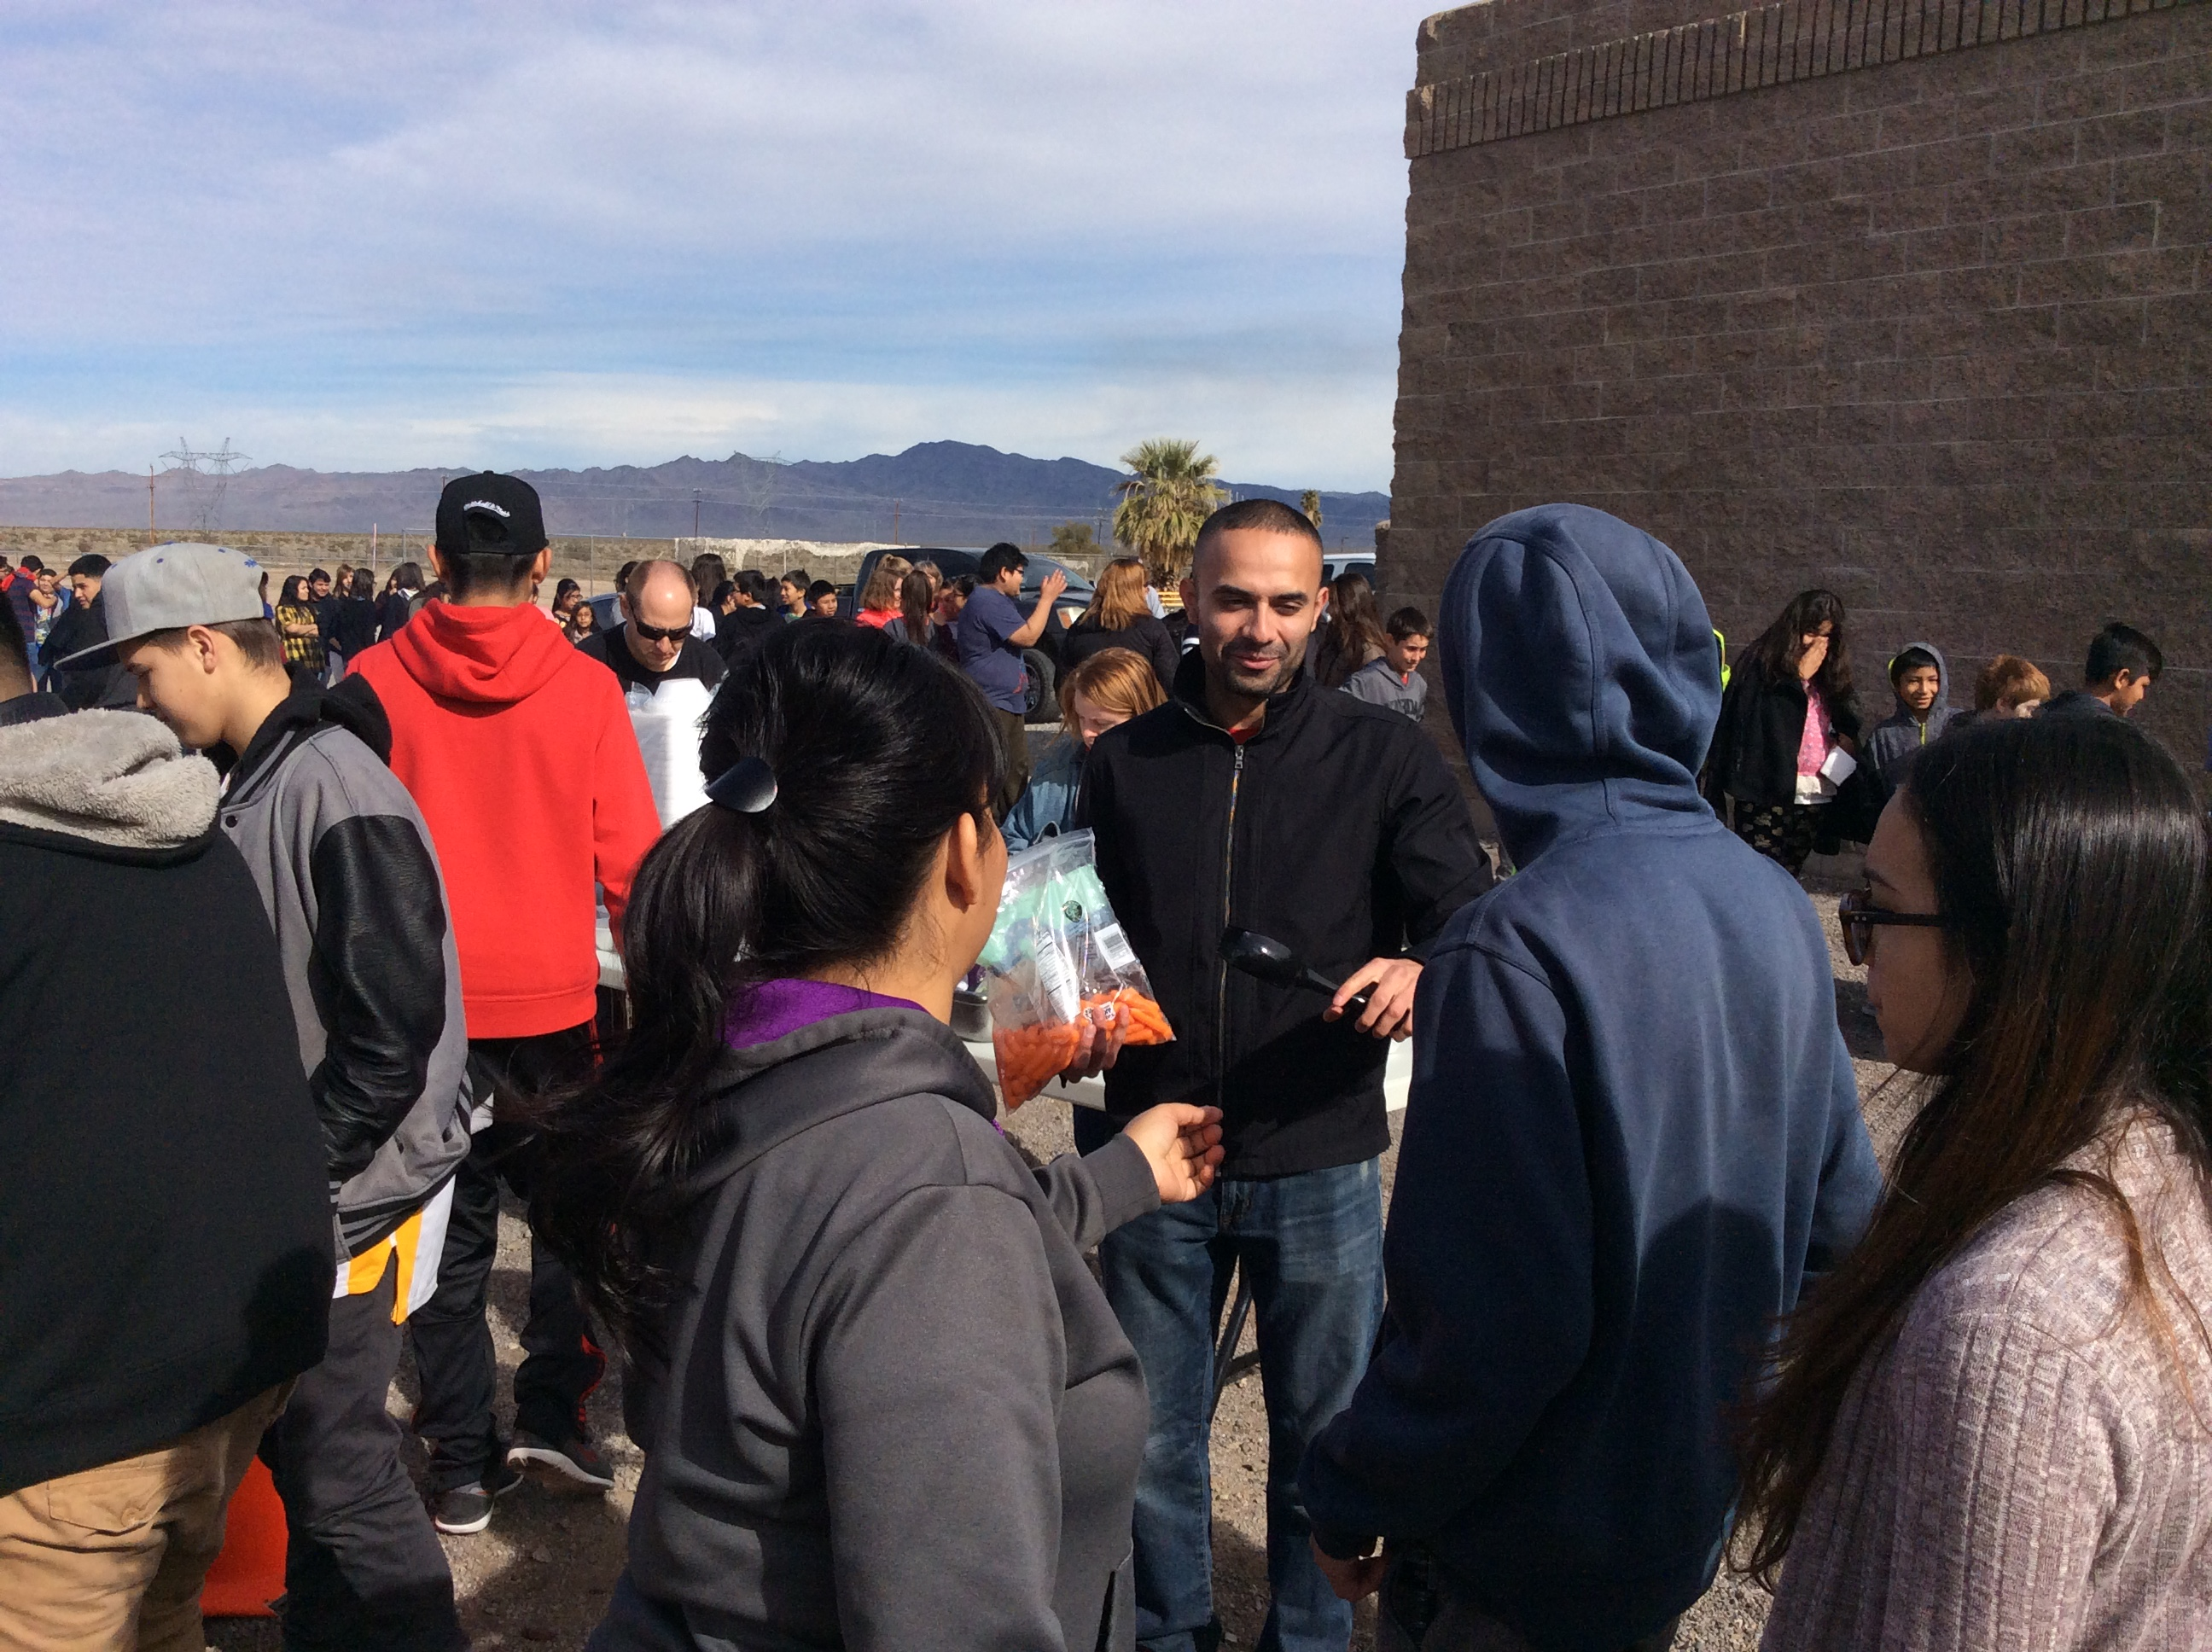 Students in line for stone soup.